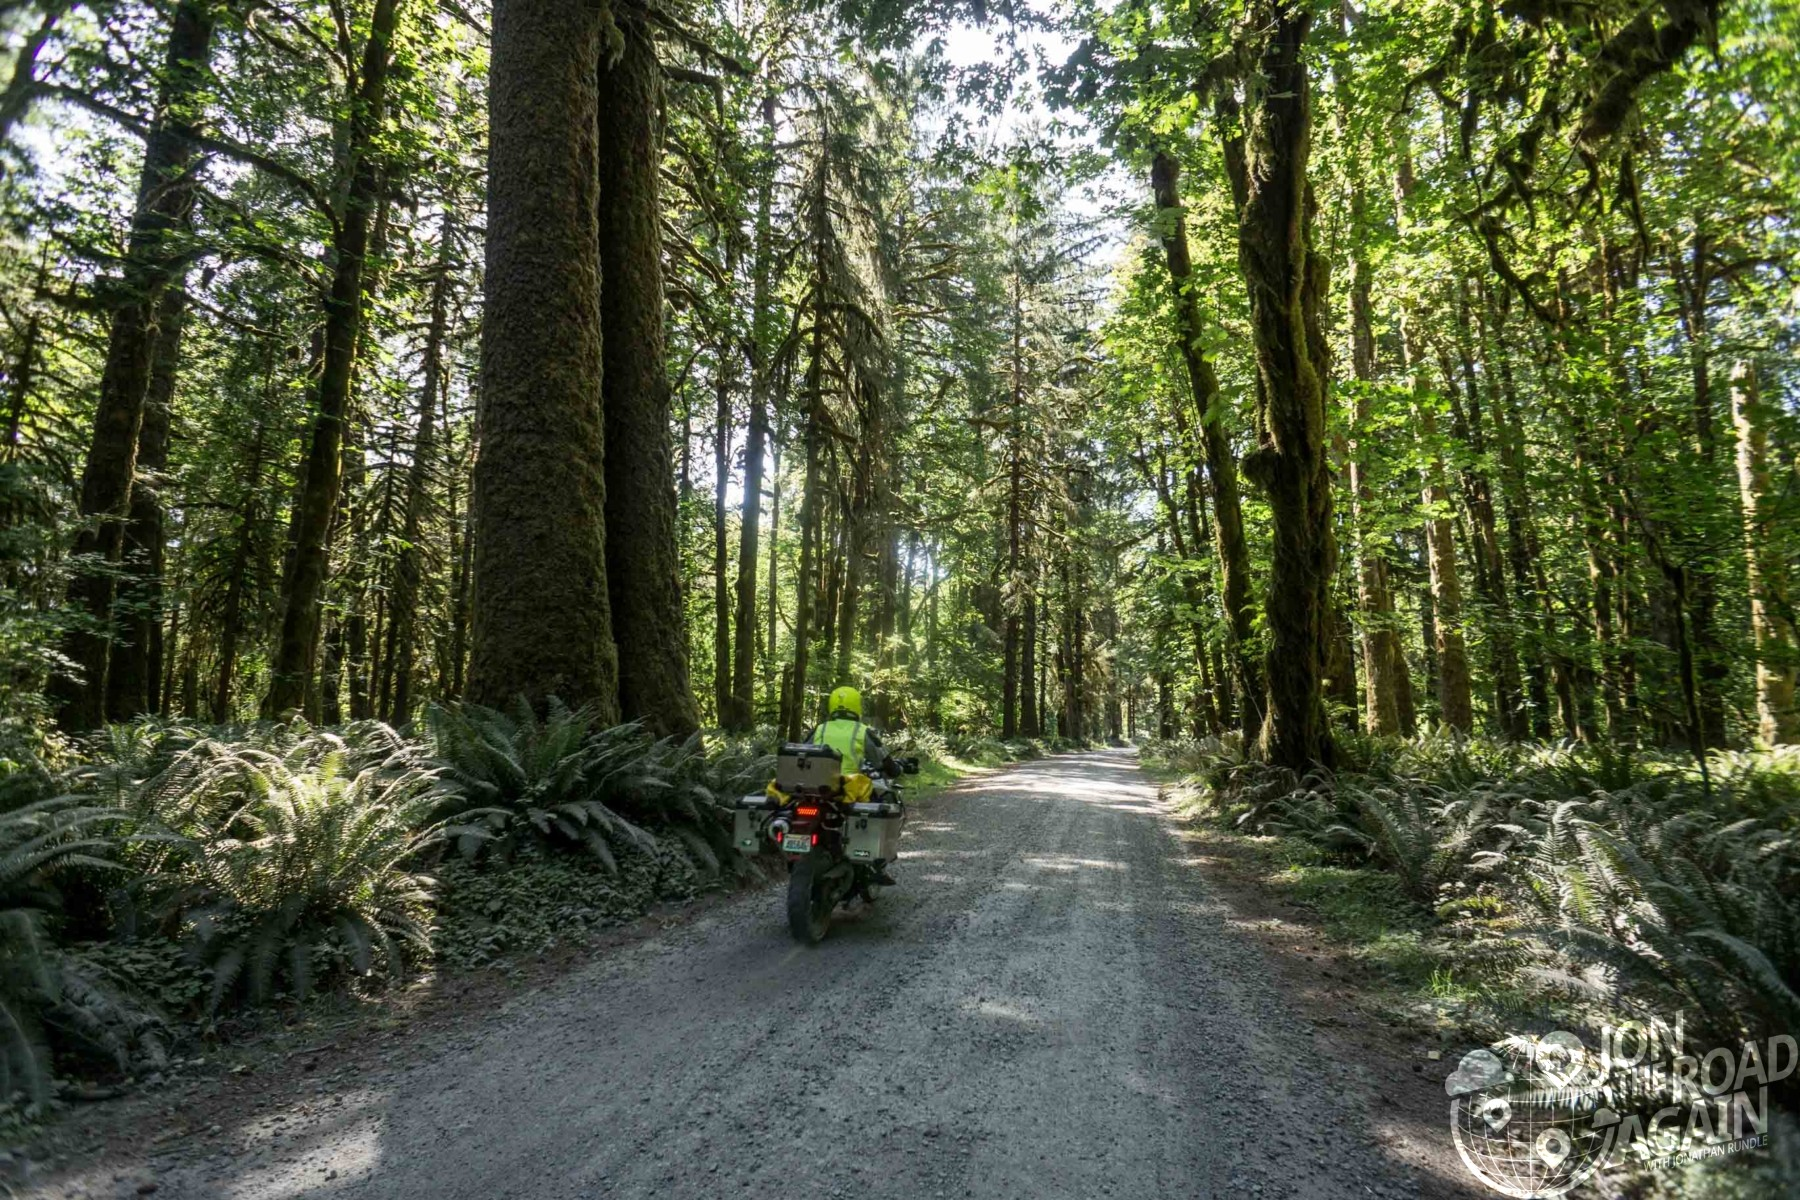 Riding the roads around lake quinault